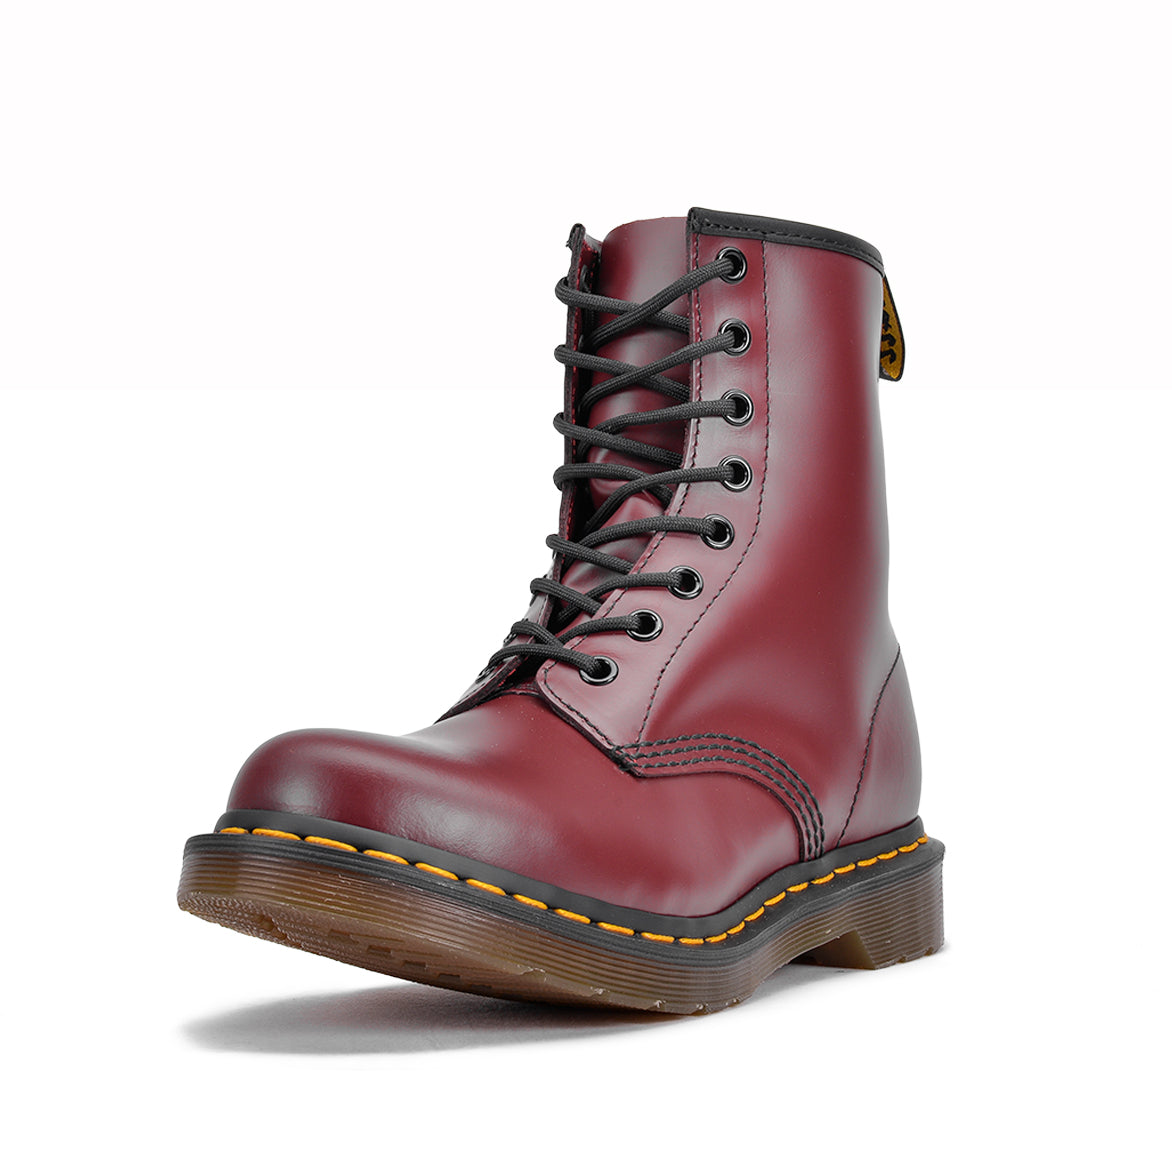 WMNS 1460 - CHERRY RED ROUGE